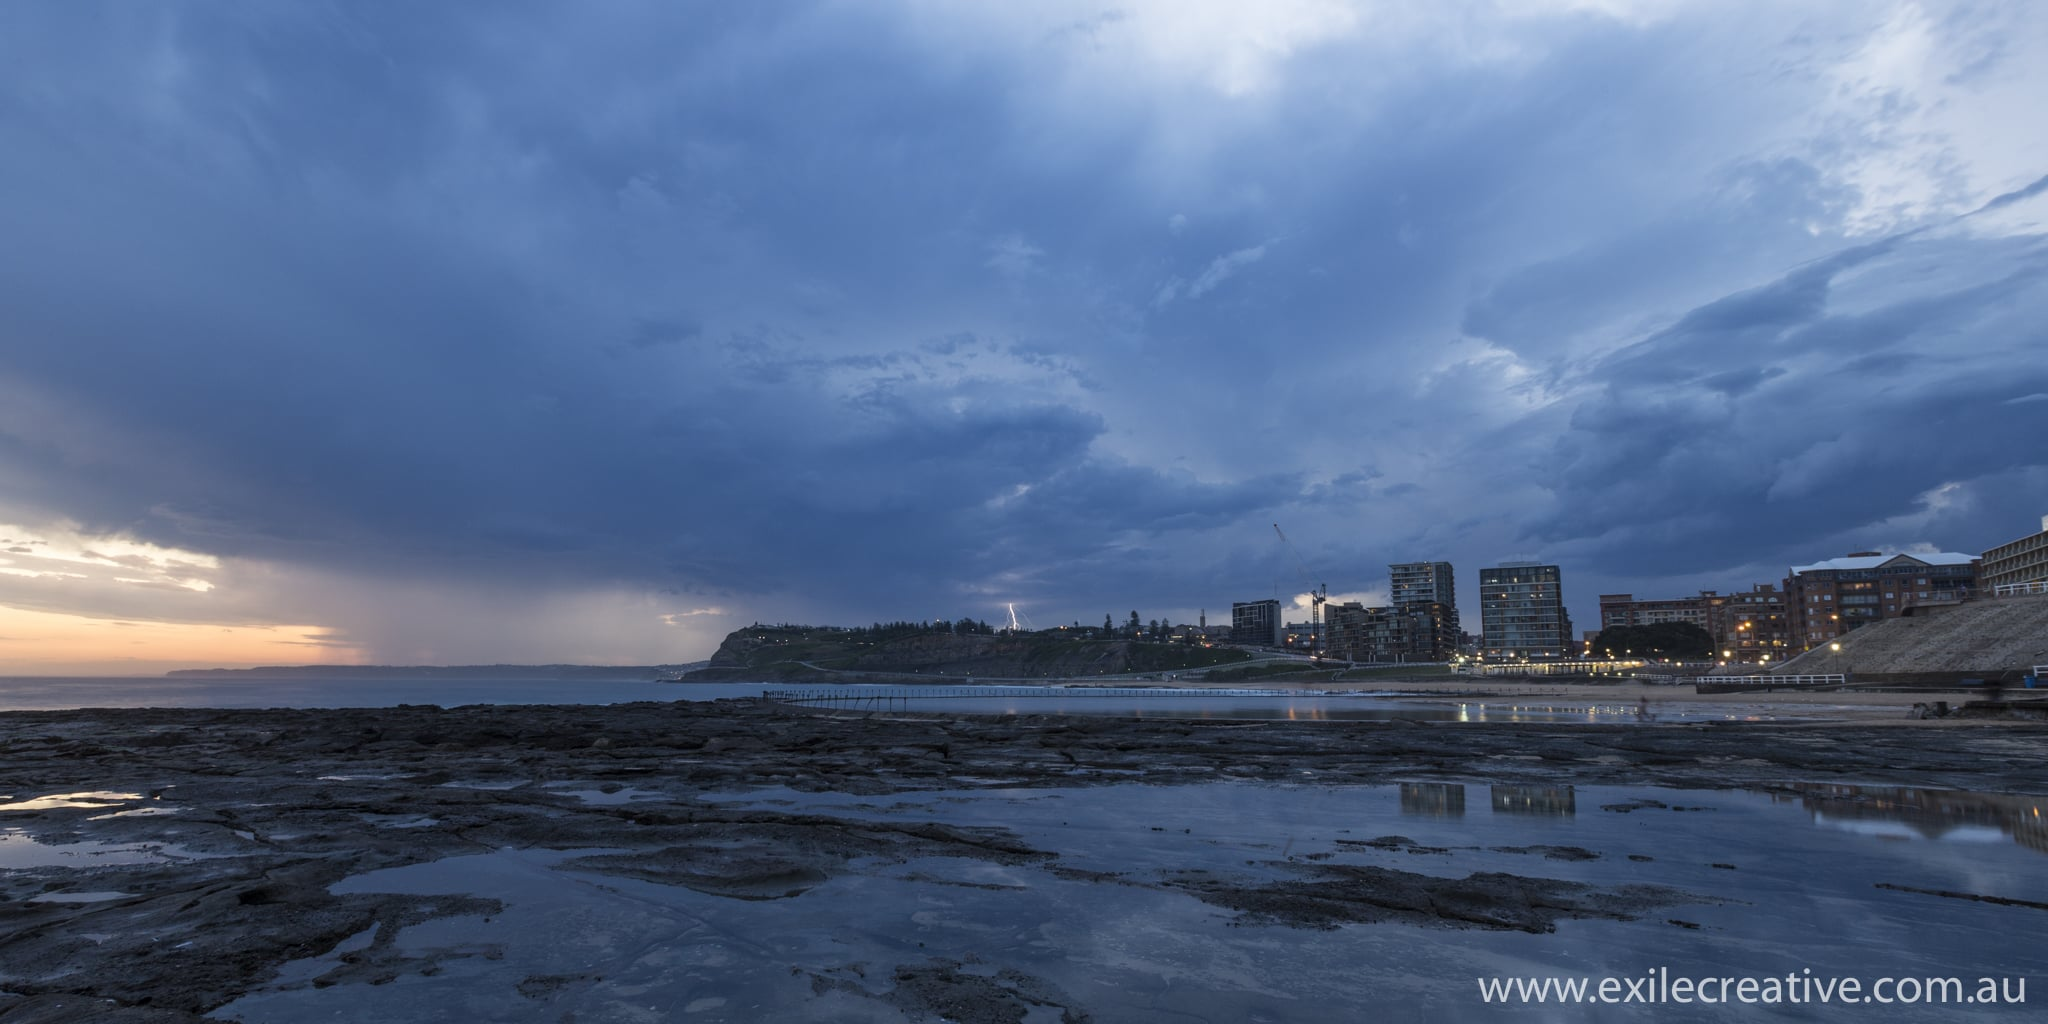 Storm rolls in over Newcastle beach